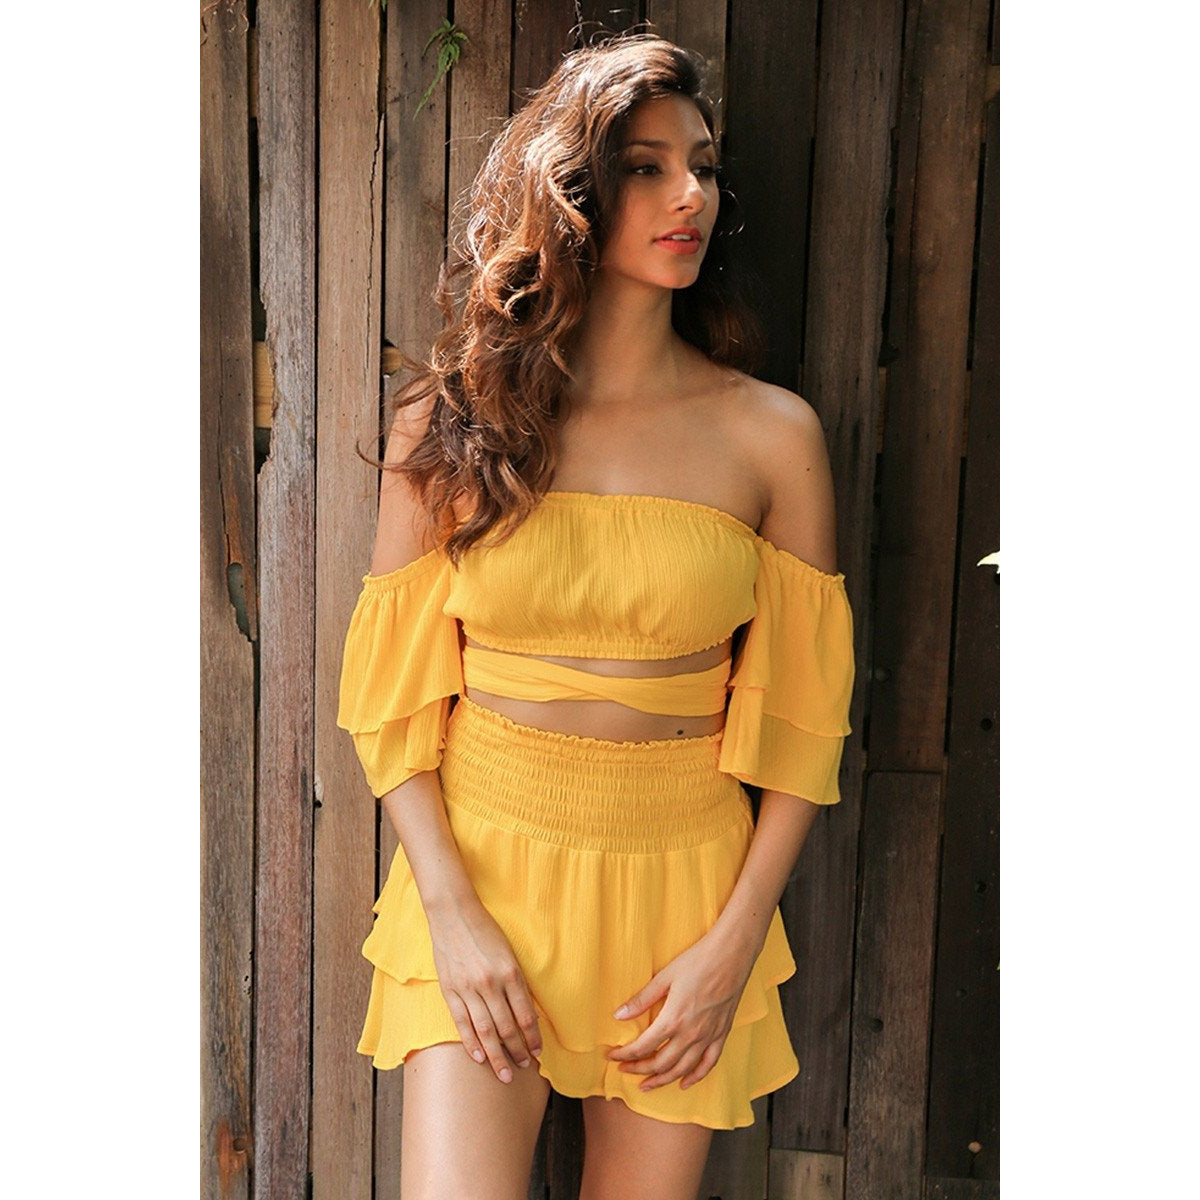 The Amani Romper is a unique design featuring a crop style bell sleeved top, sash waist tie, and an asymmetrical tiered ruffle bottom. Three colors available: yellow, red, and black.